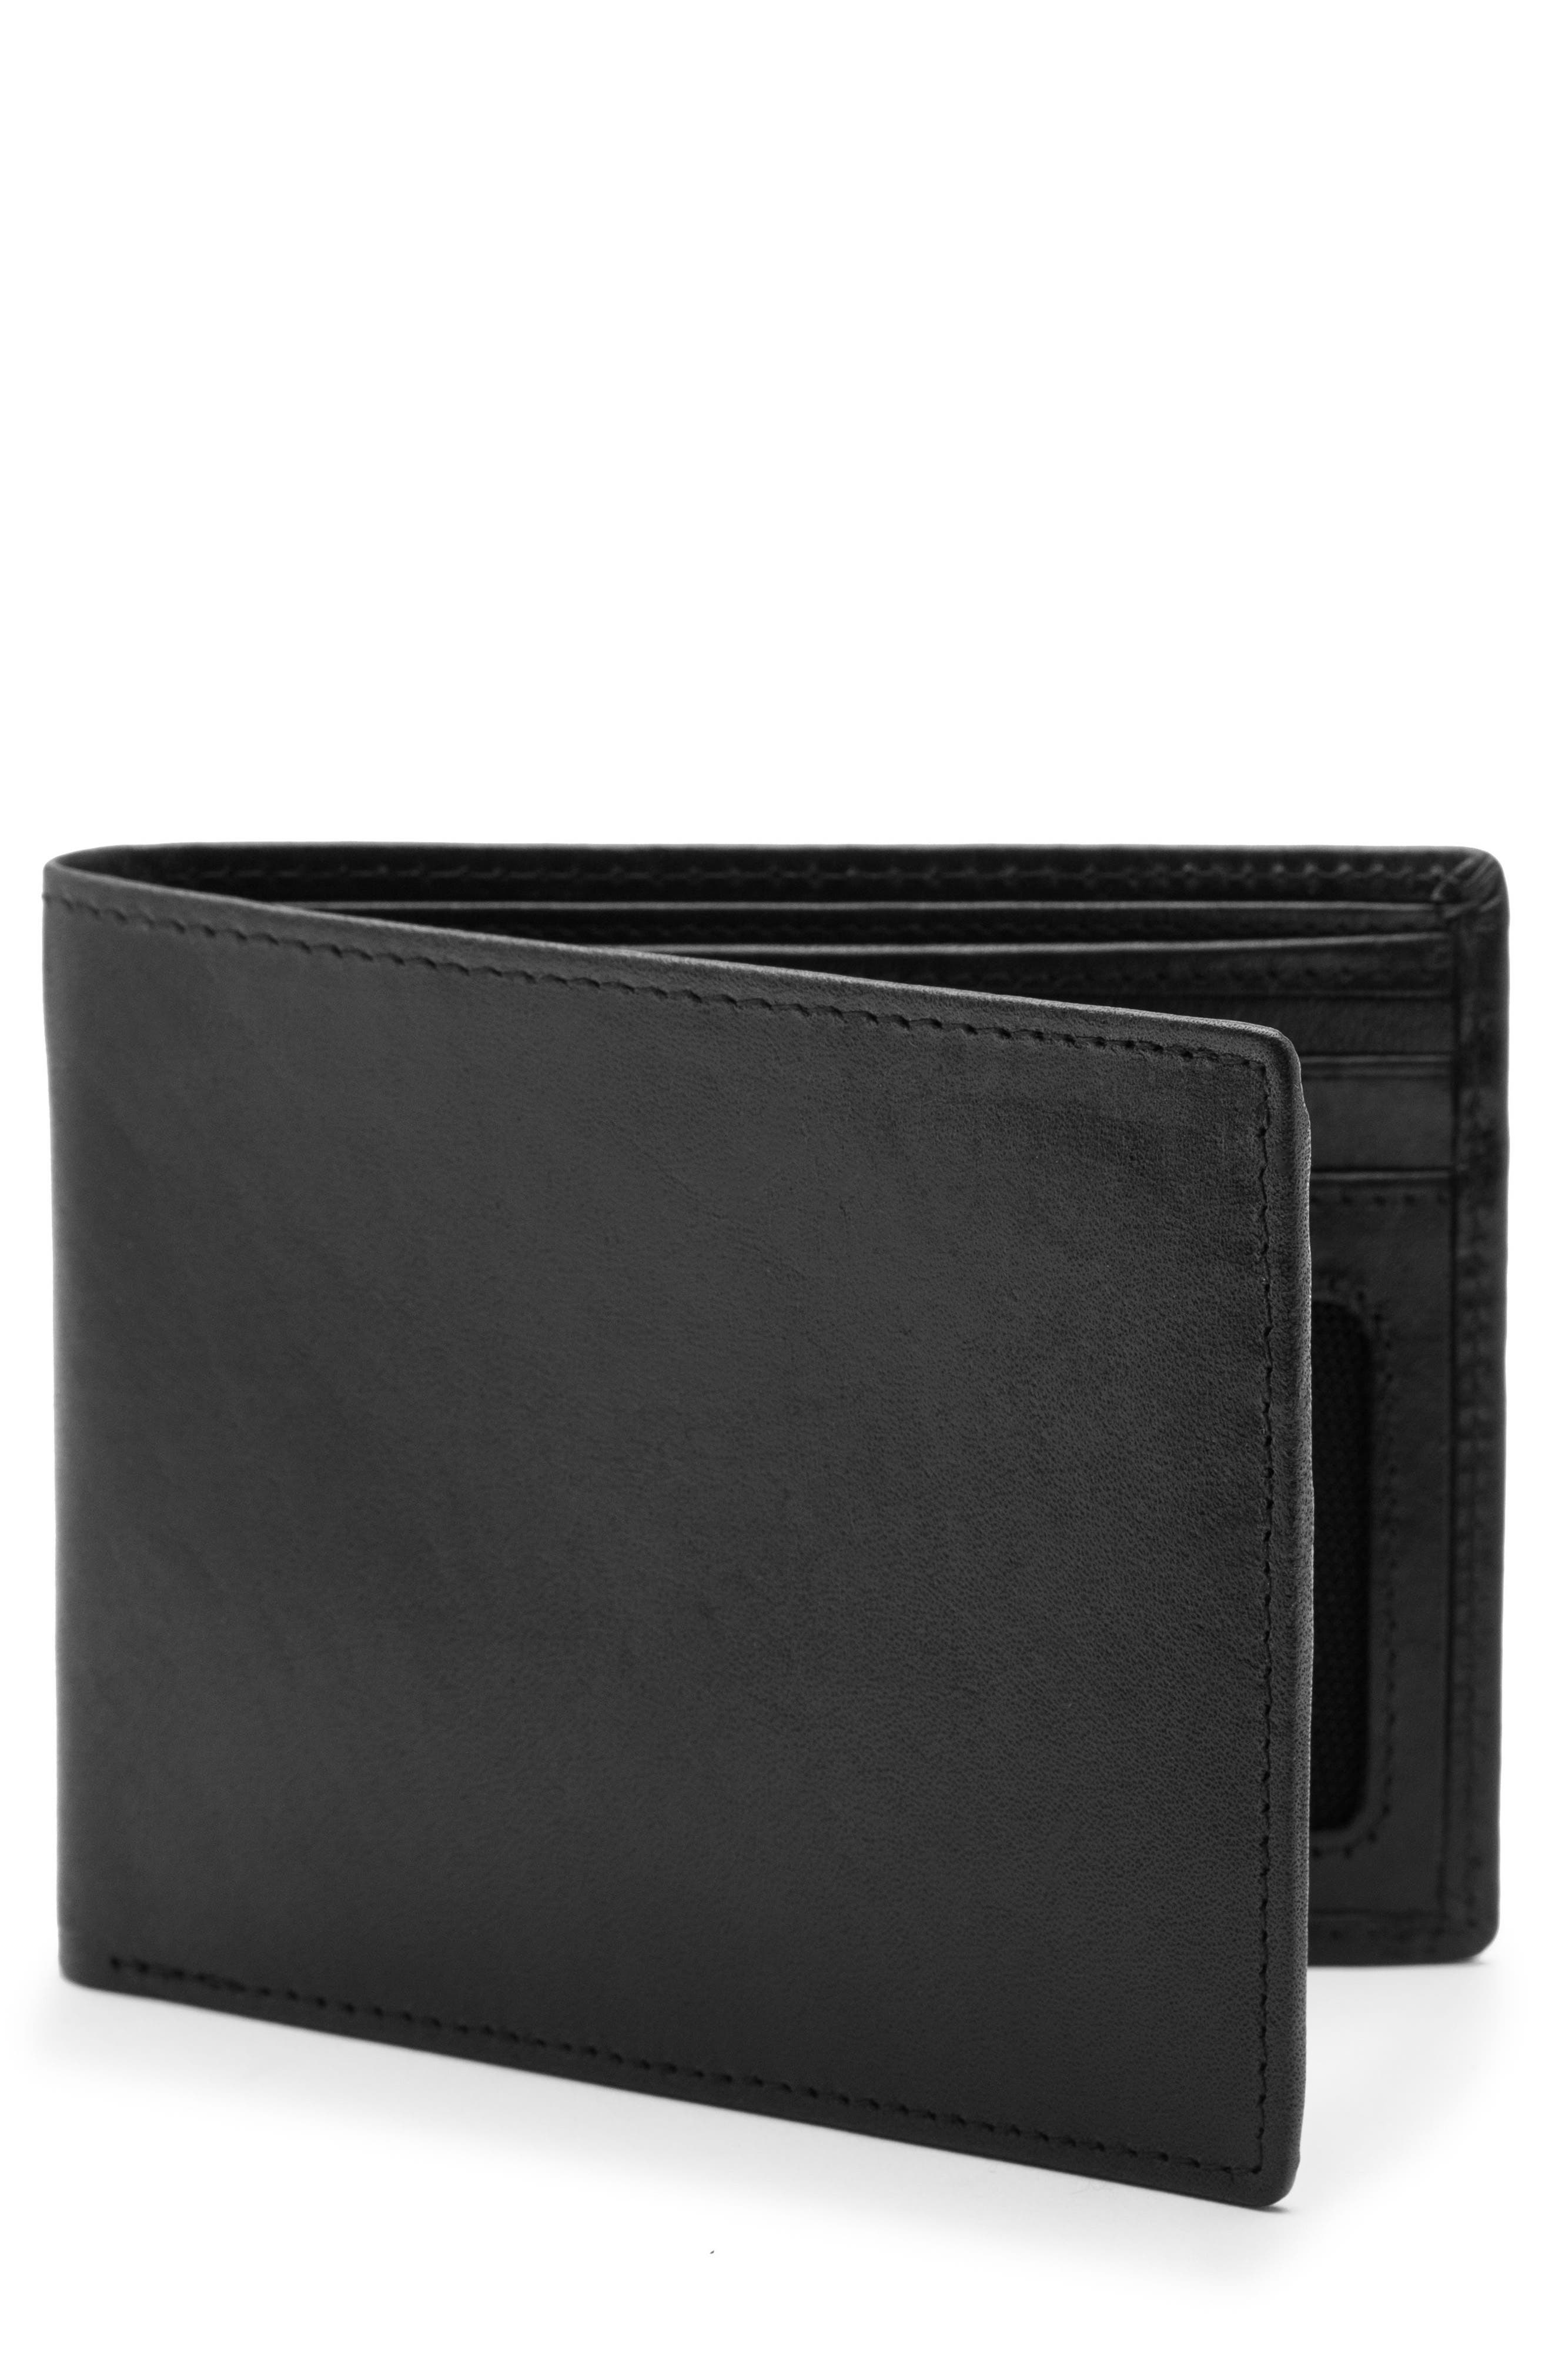 Bosca Vermont Executive ID Leather Wallet